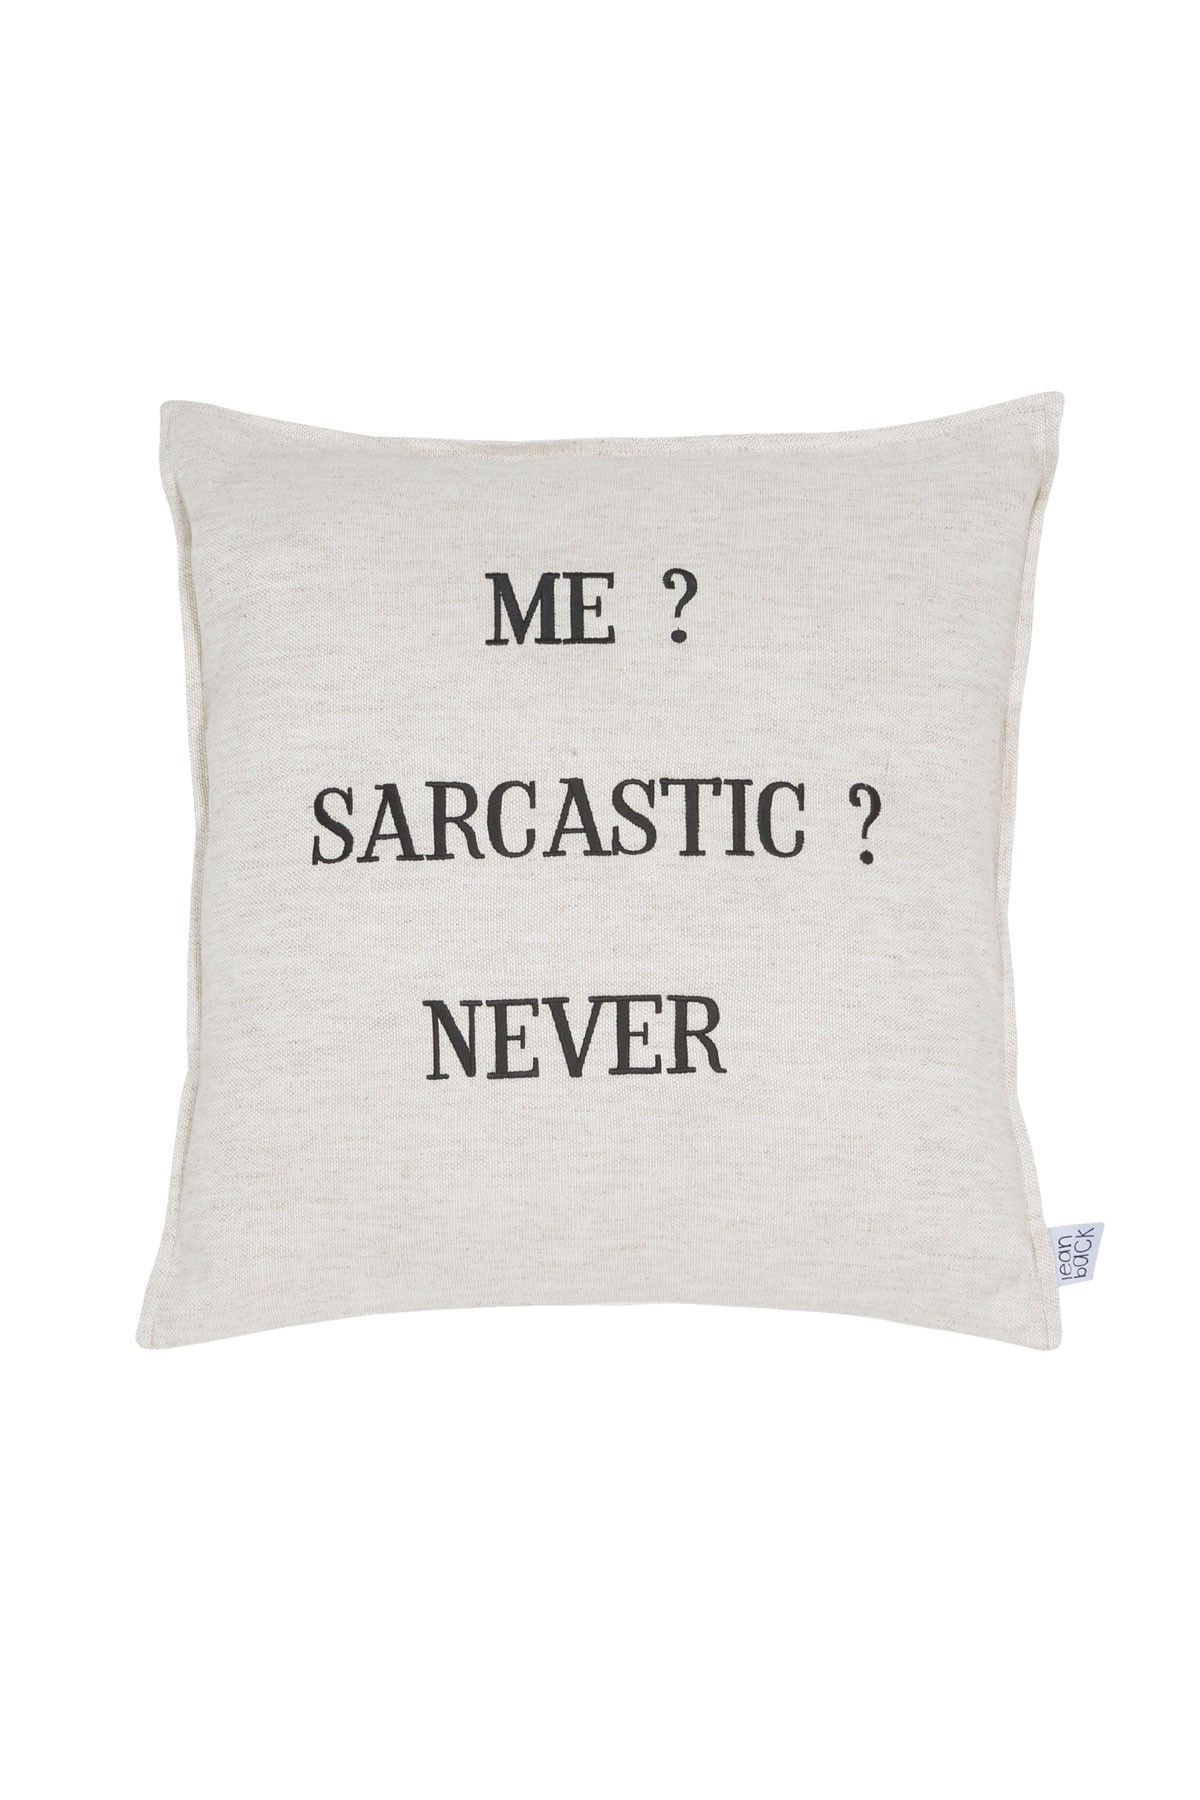 Say Something Linen - Sarcastic Pillow